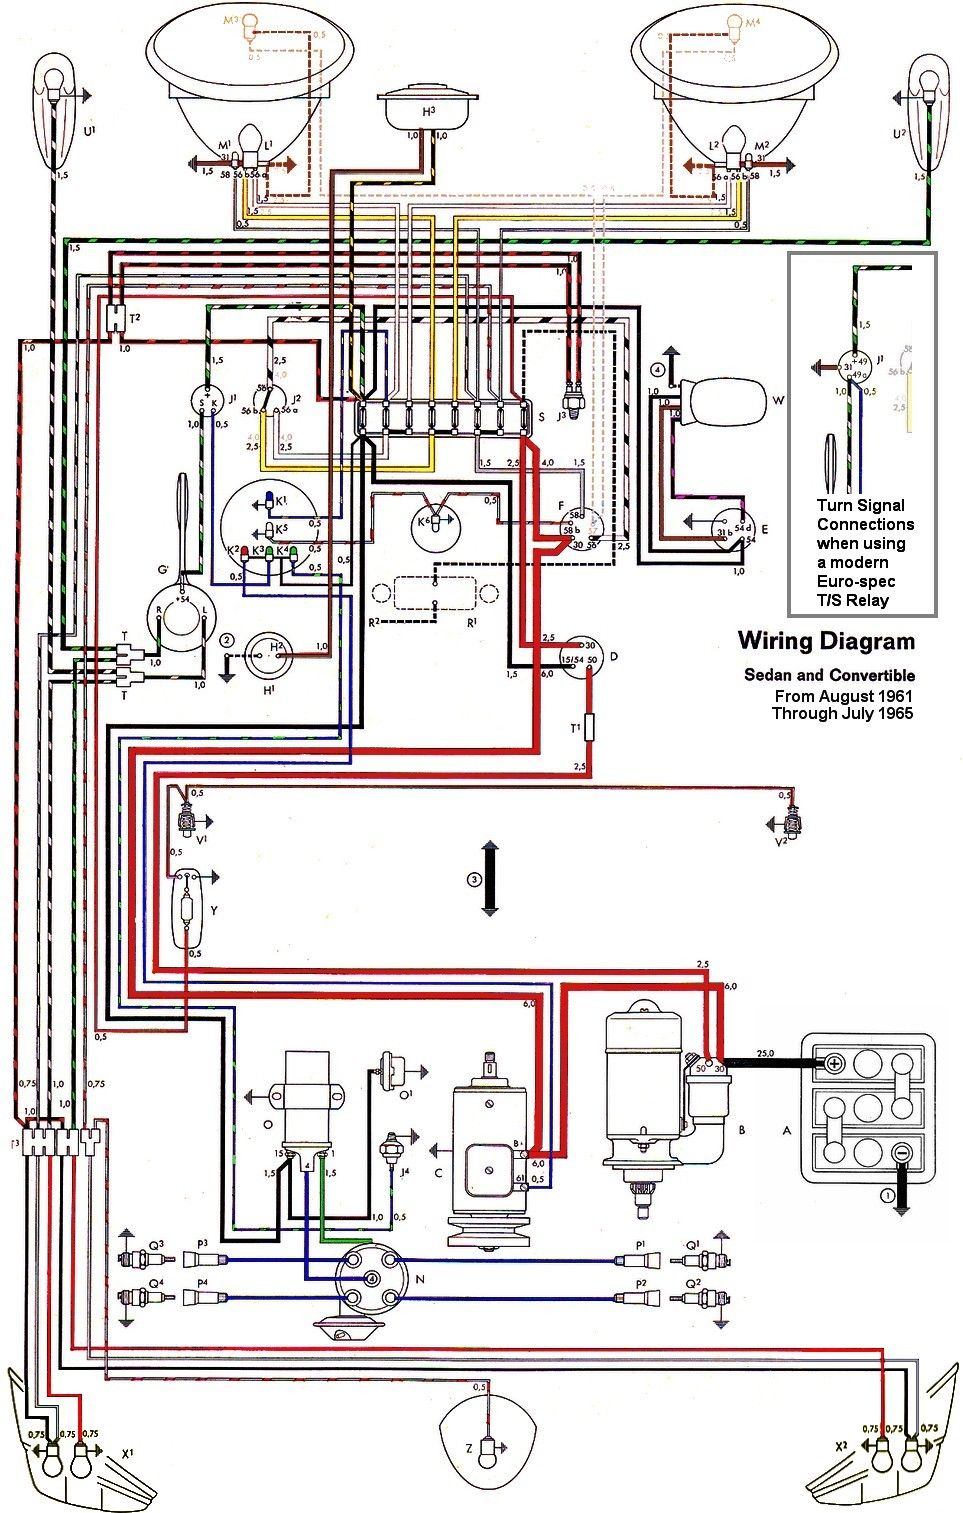 medium resolution of wiring diagram vw beetle sedan and convertible 1961 1965 vw volkswagen amp meter wiring diagram volkswagen wiring diagram